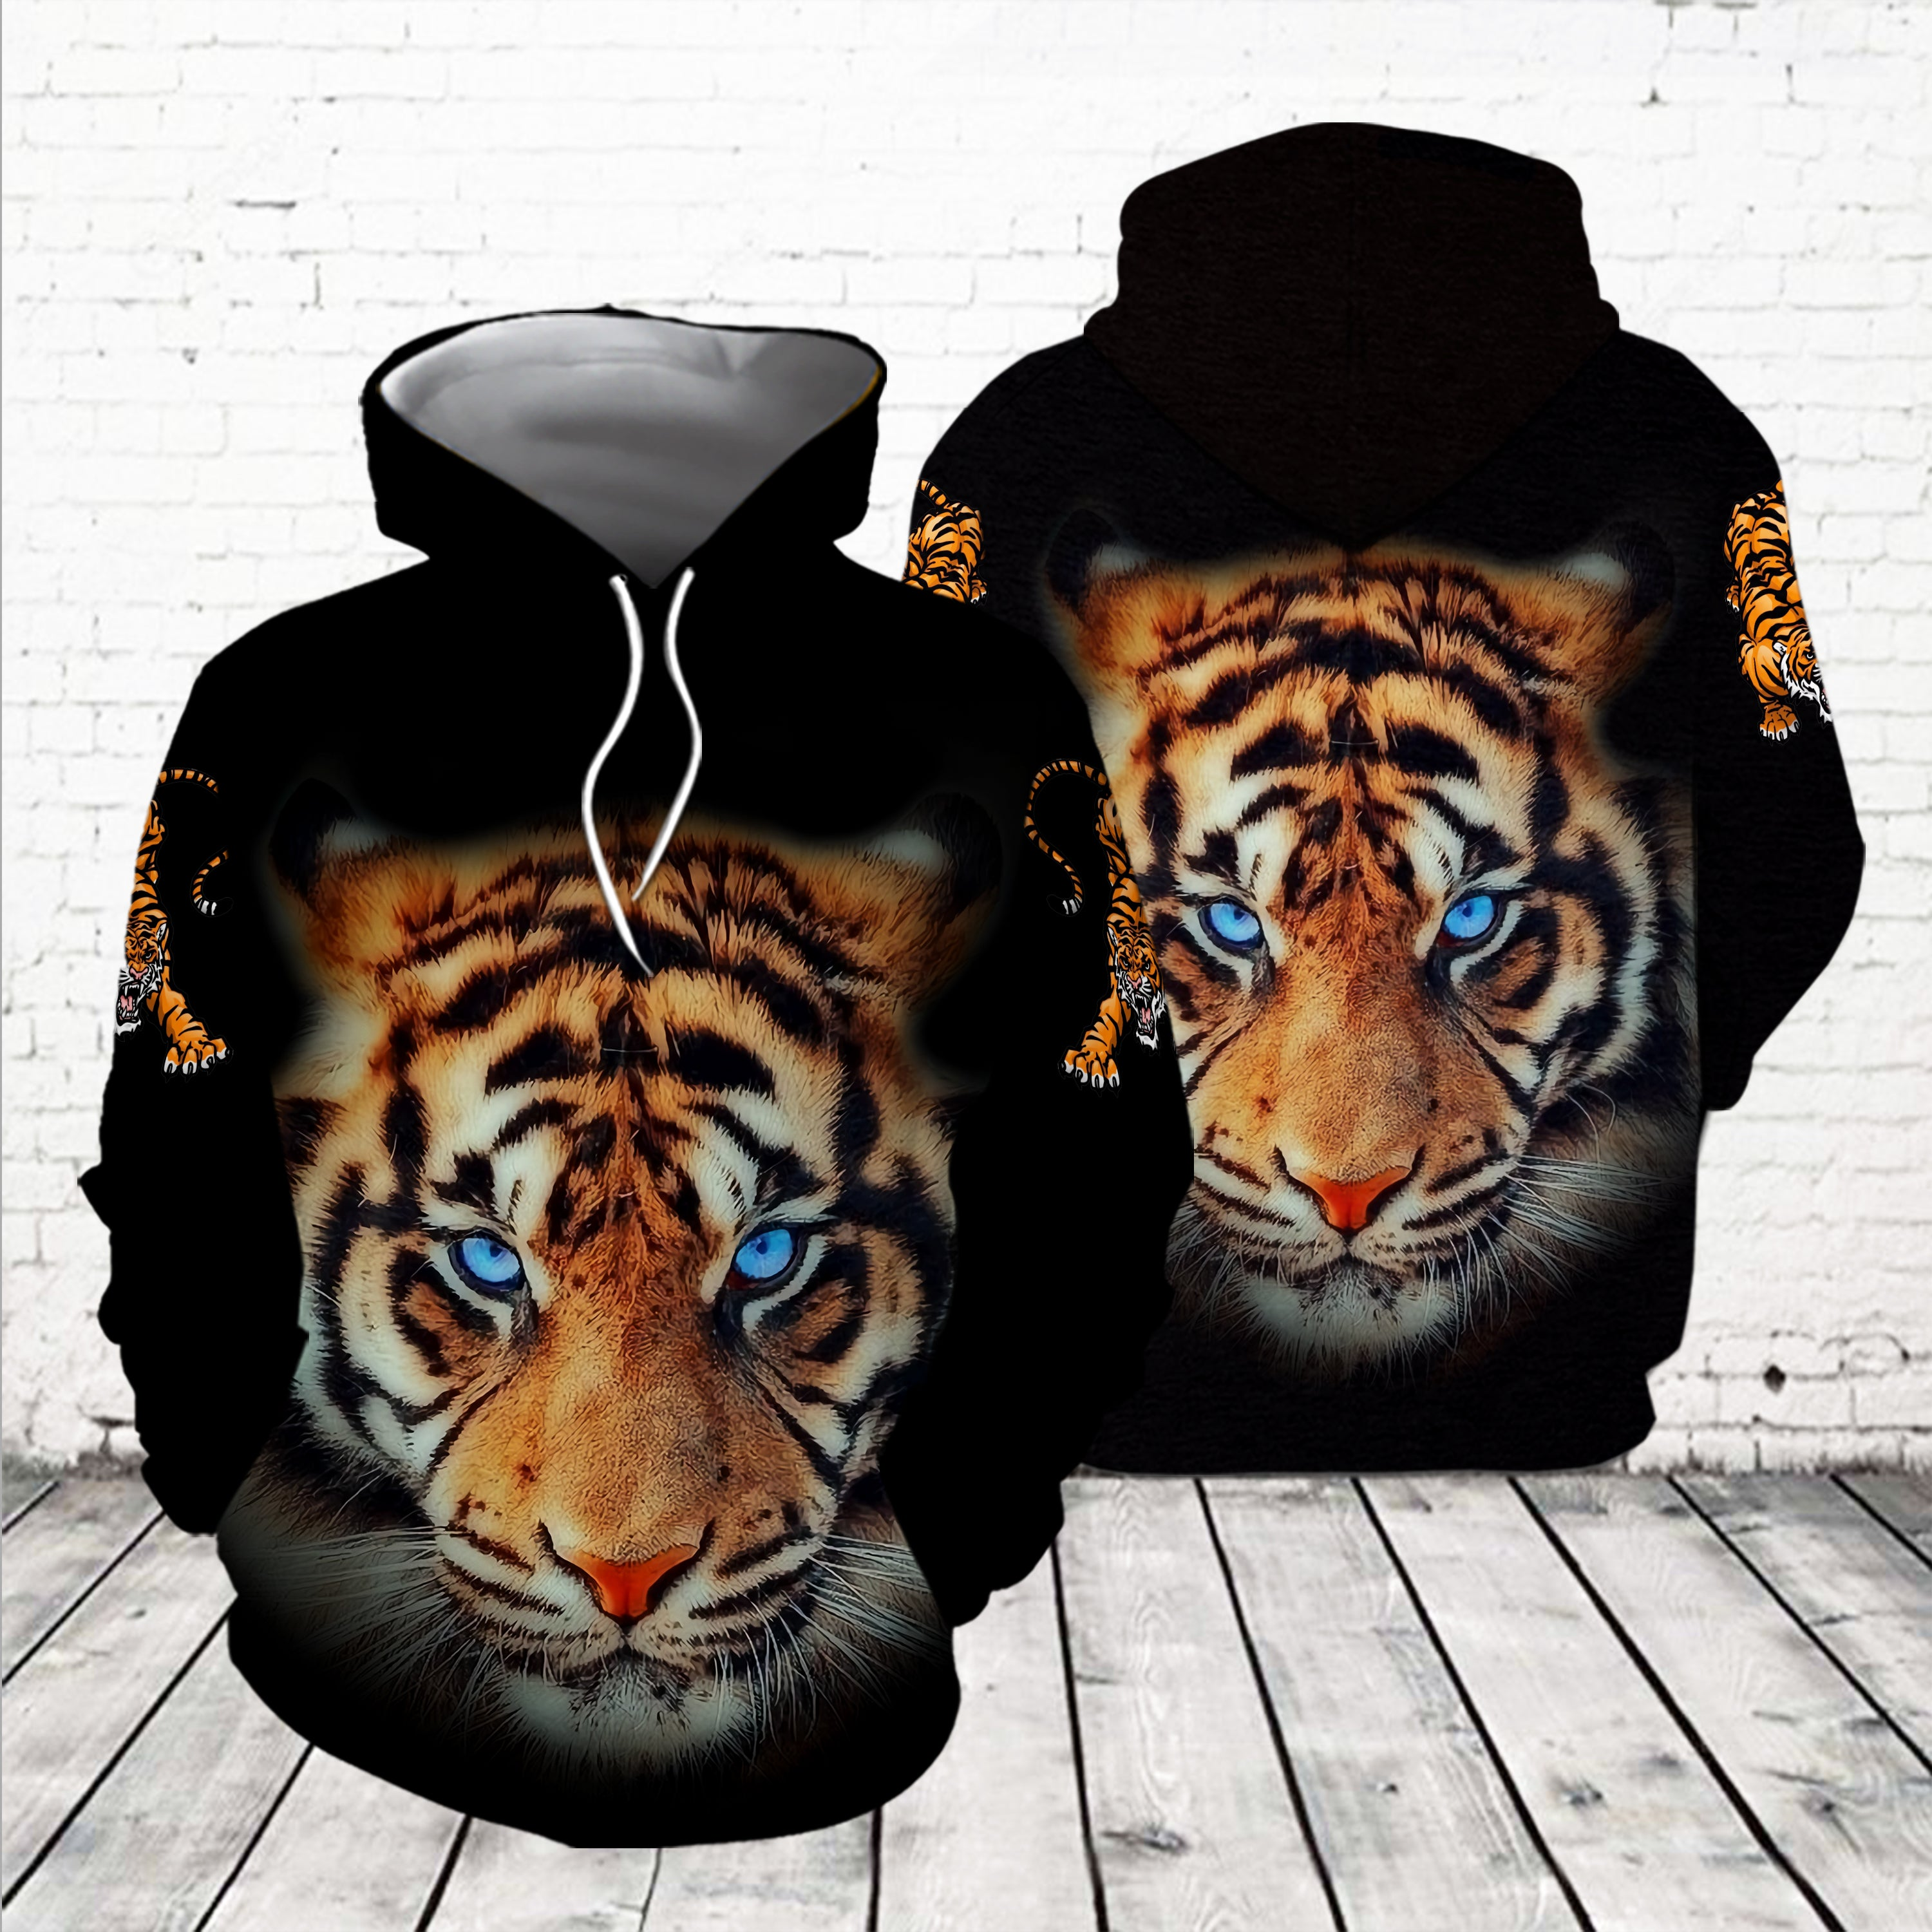 TIGERS 3D APPARELS TATTOO H005T4